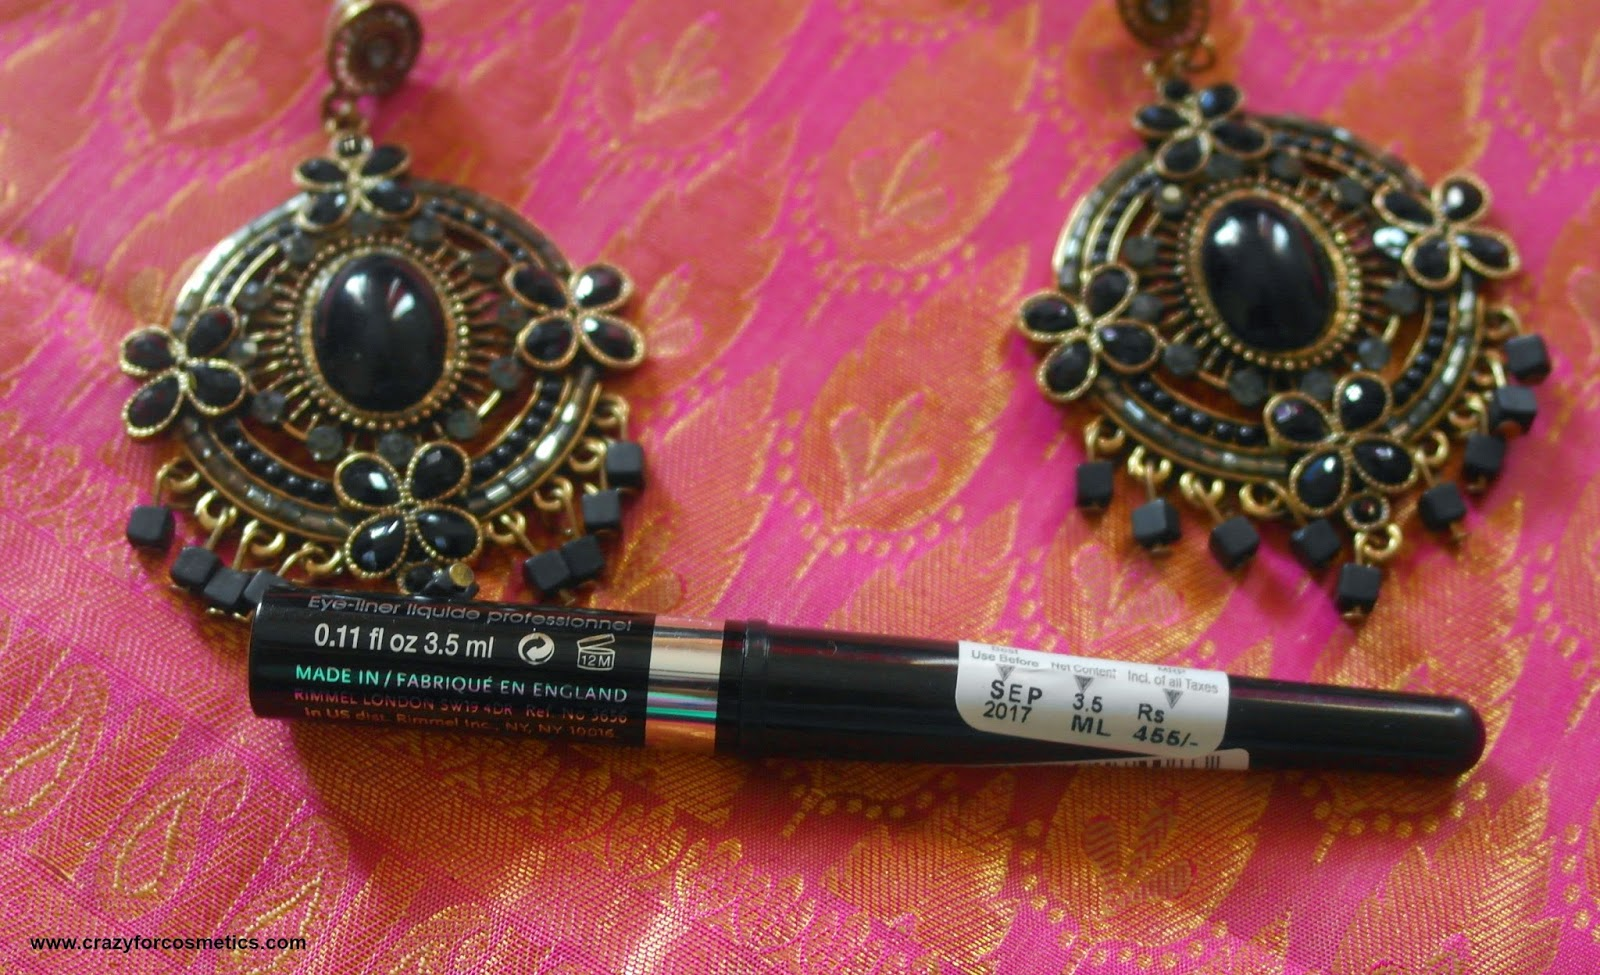 Rimmel London Black Liquid Liner Glam eyes professional eyeliner in India